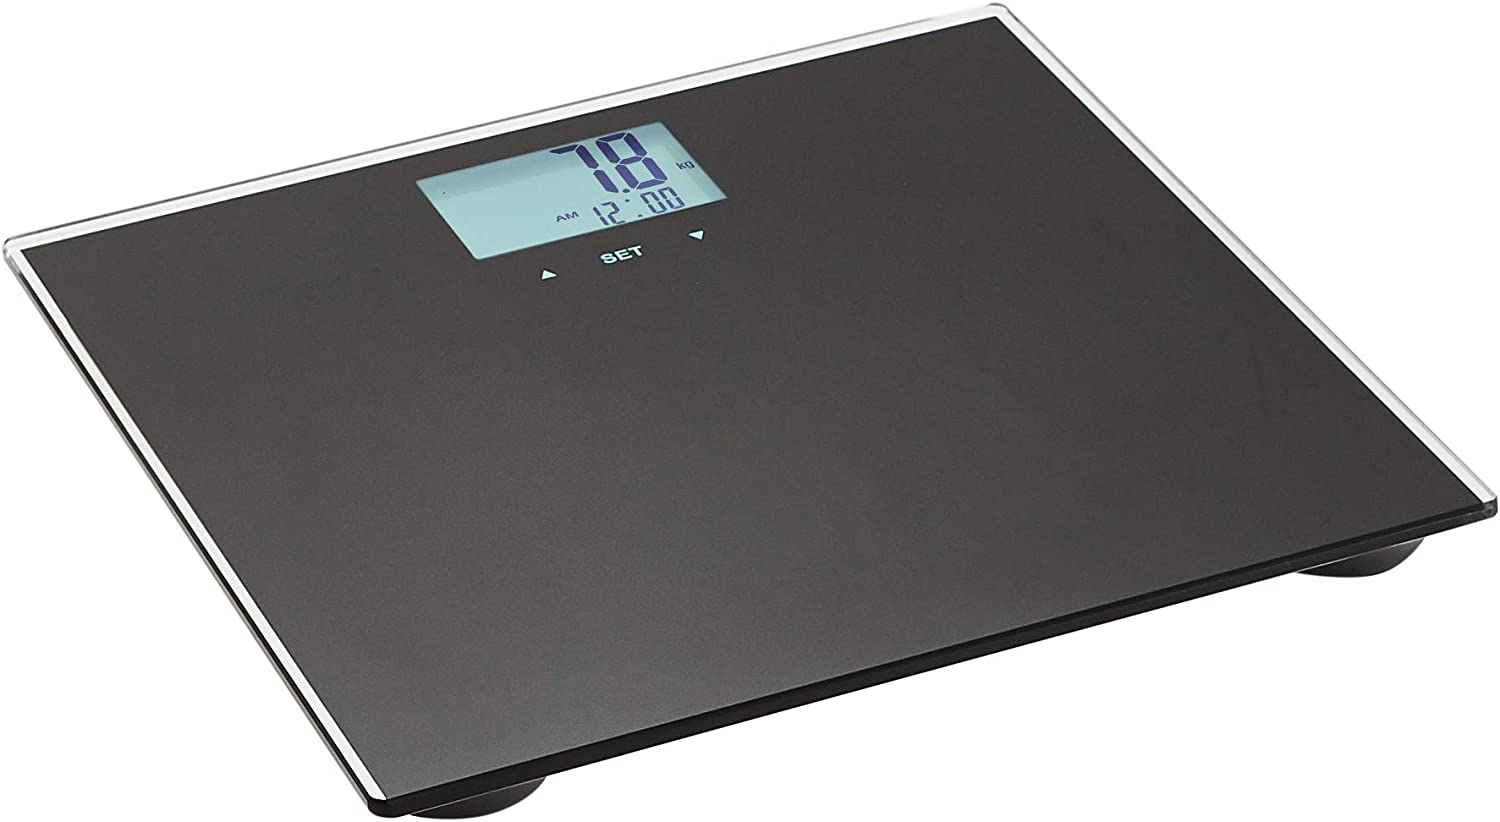 AmazonBasics Body Weight Scale with BMI technology - Auto On/Off Function, Black